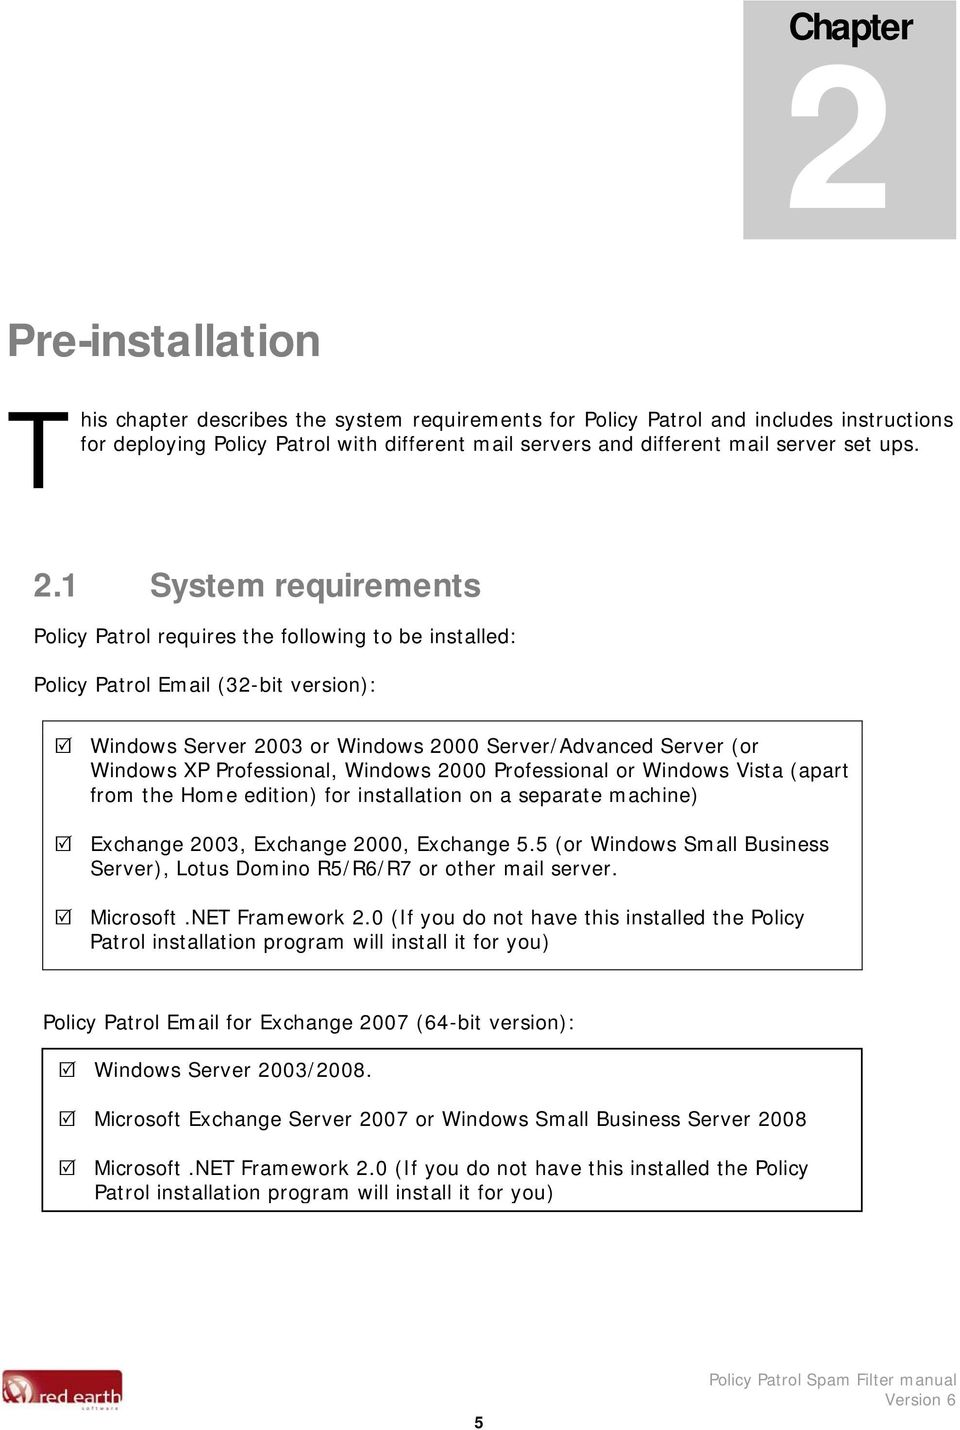 1 System requirements Policy Patrol requires the following to be installed: Policy Patrol Email (32-bit version): Windows Server 2003 or Windows 2000 Server/Advanced Server (or Windows XP